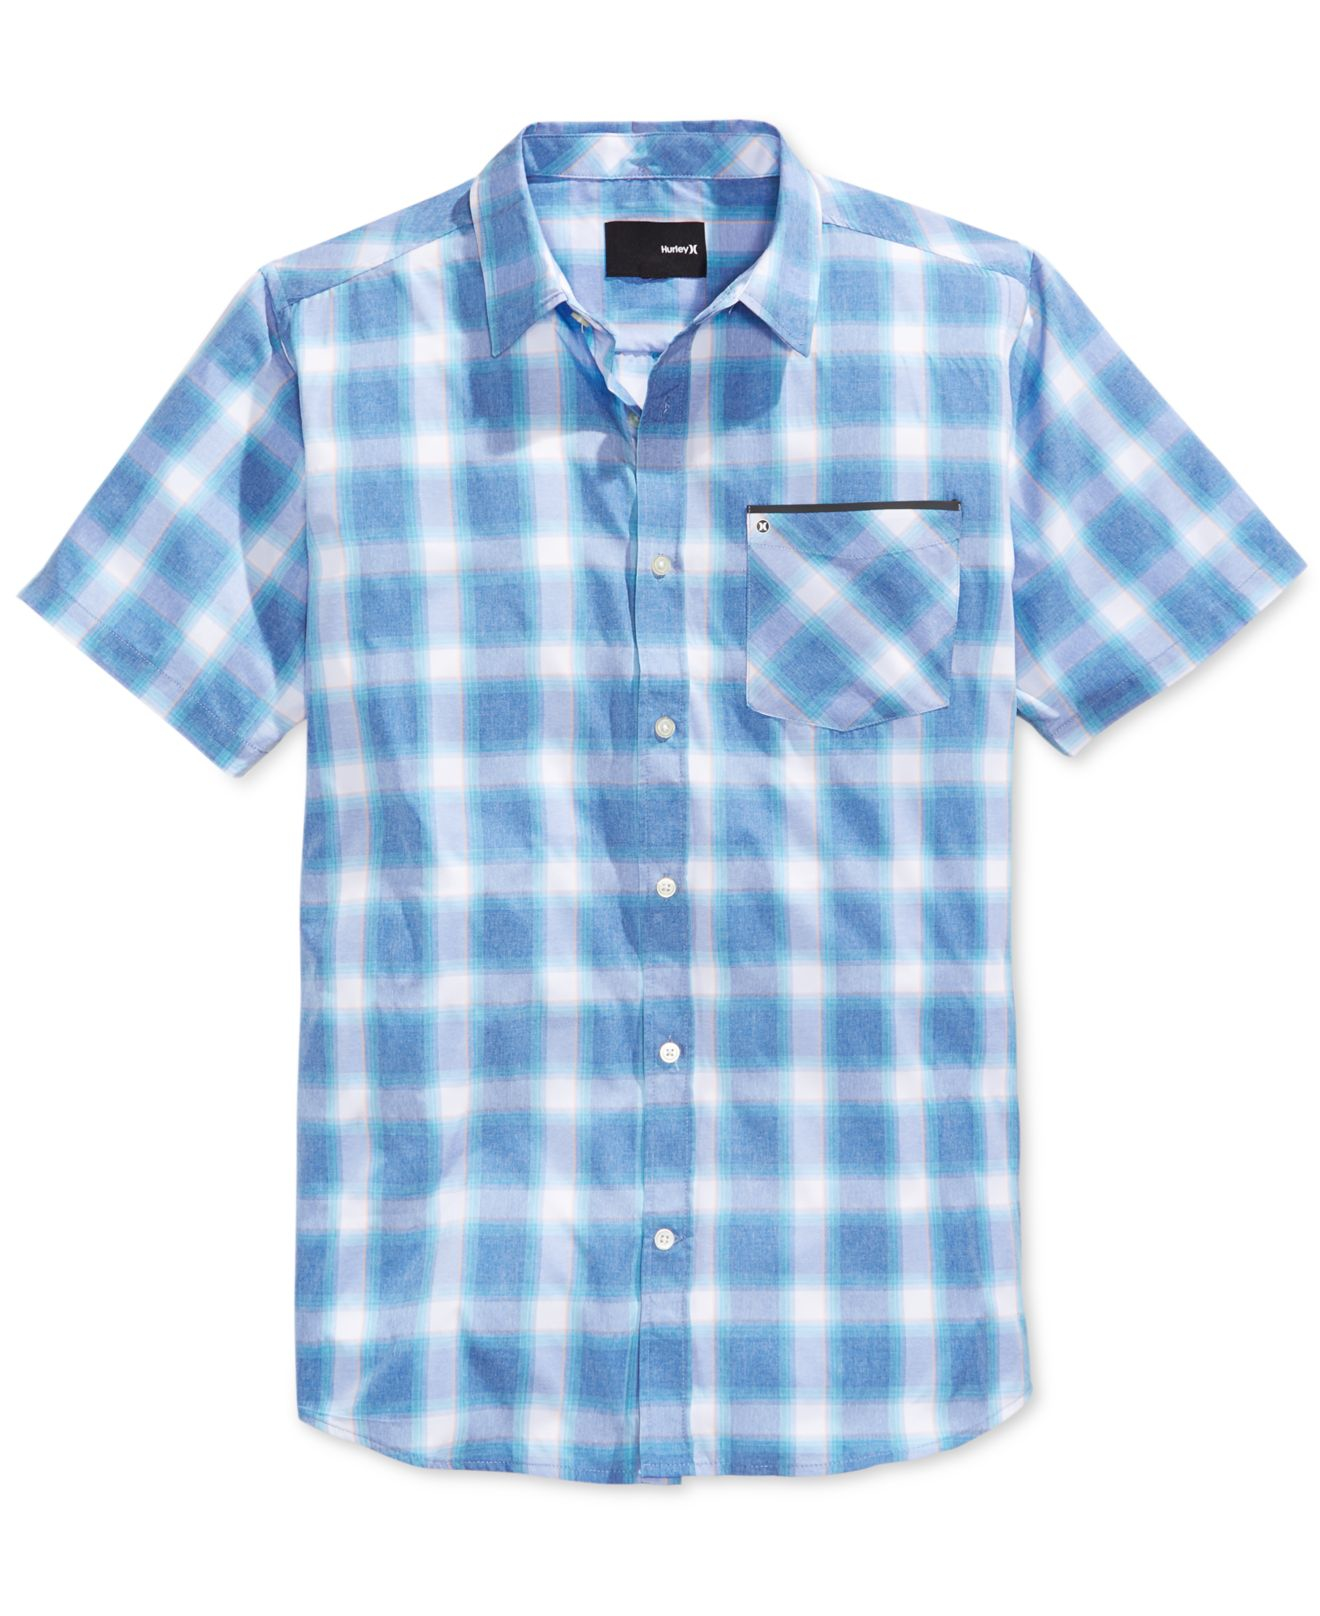 Lyst hurley men 39 s dakota dri fit woven plaid short Short sleeve plaid shirts